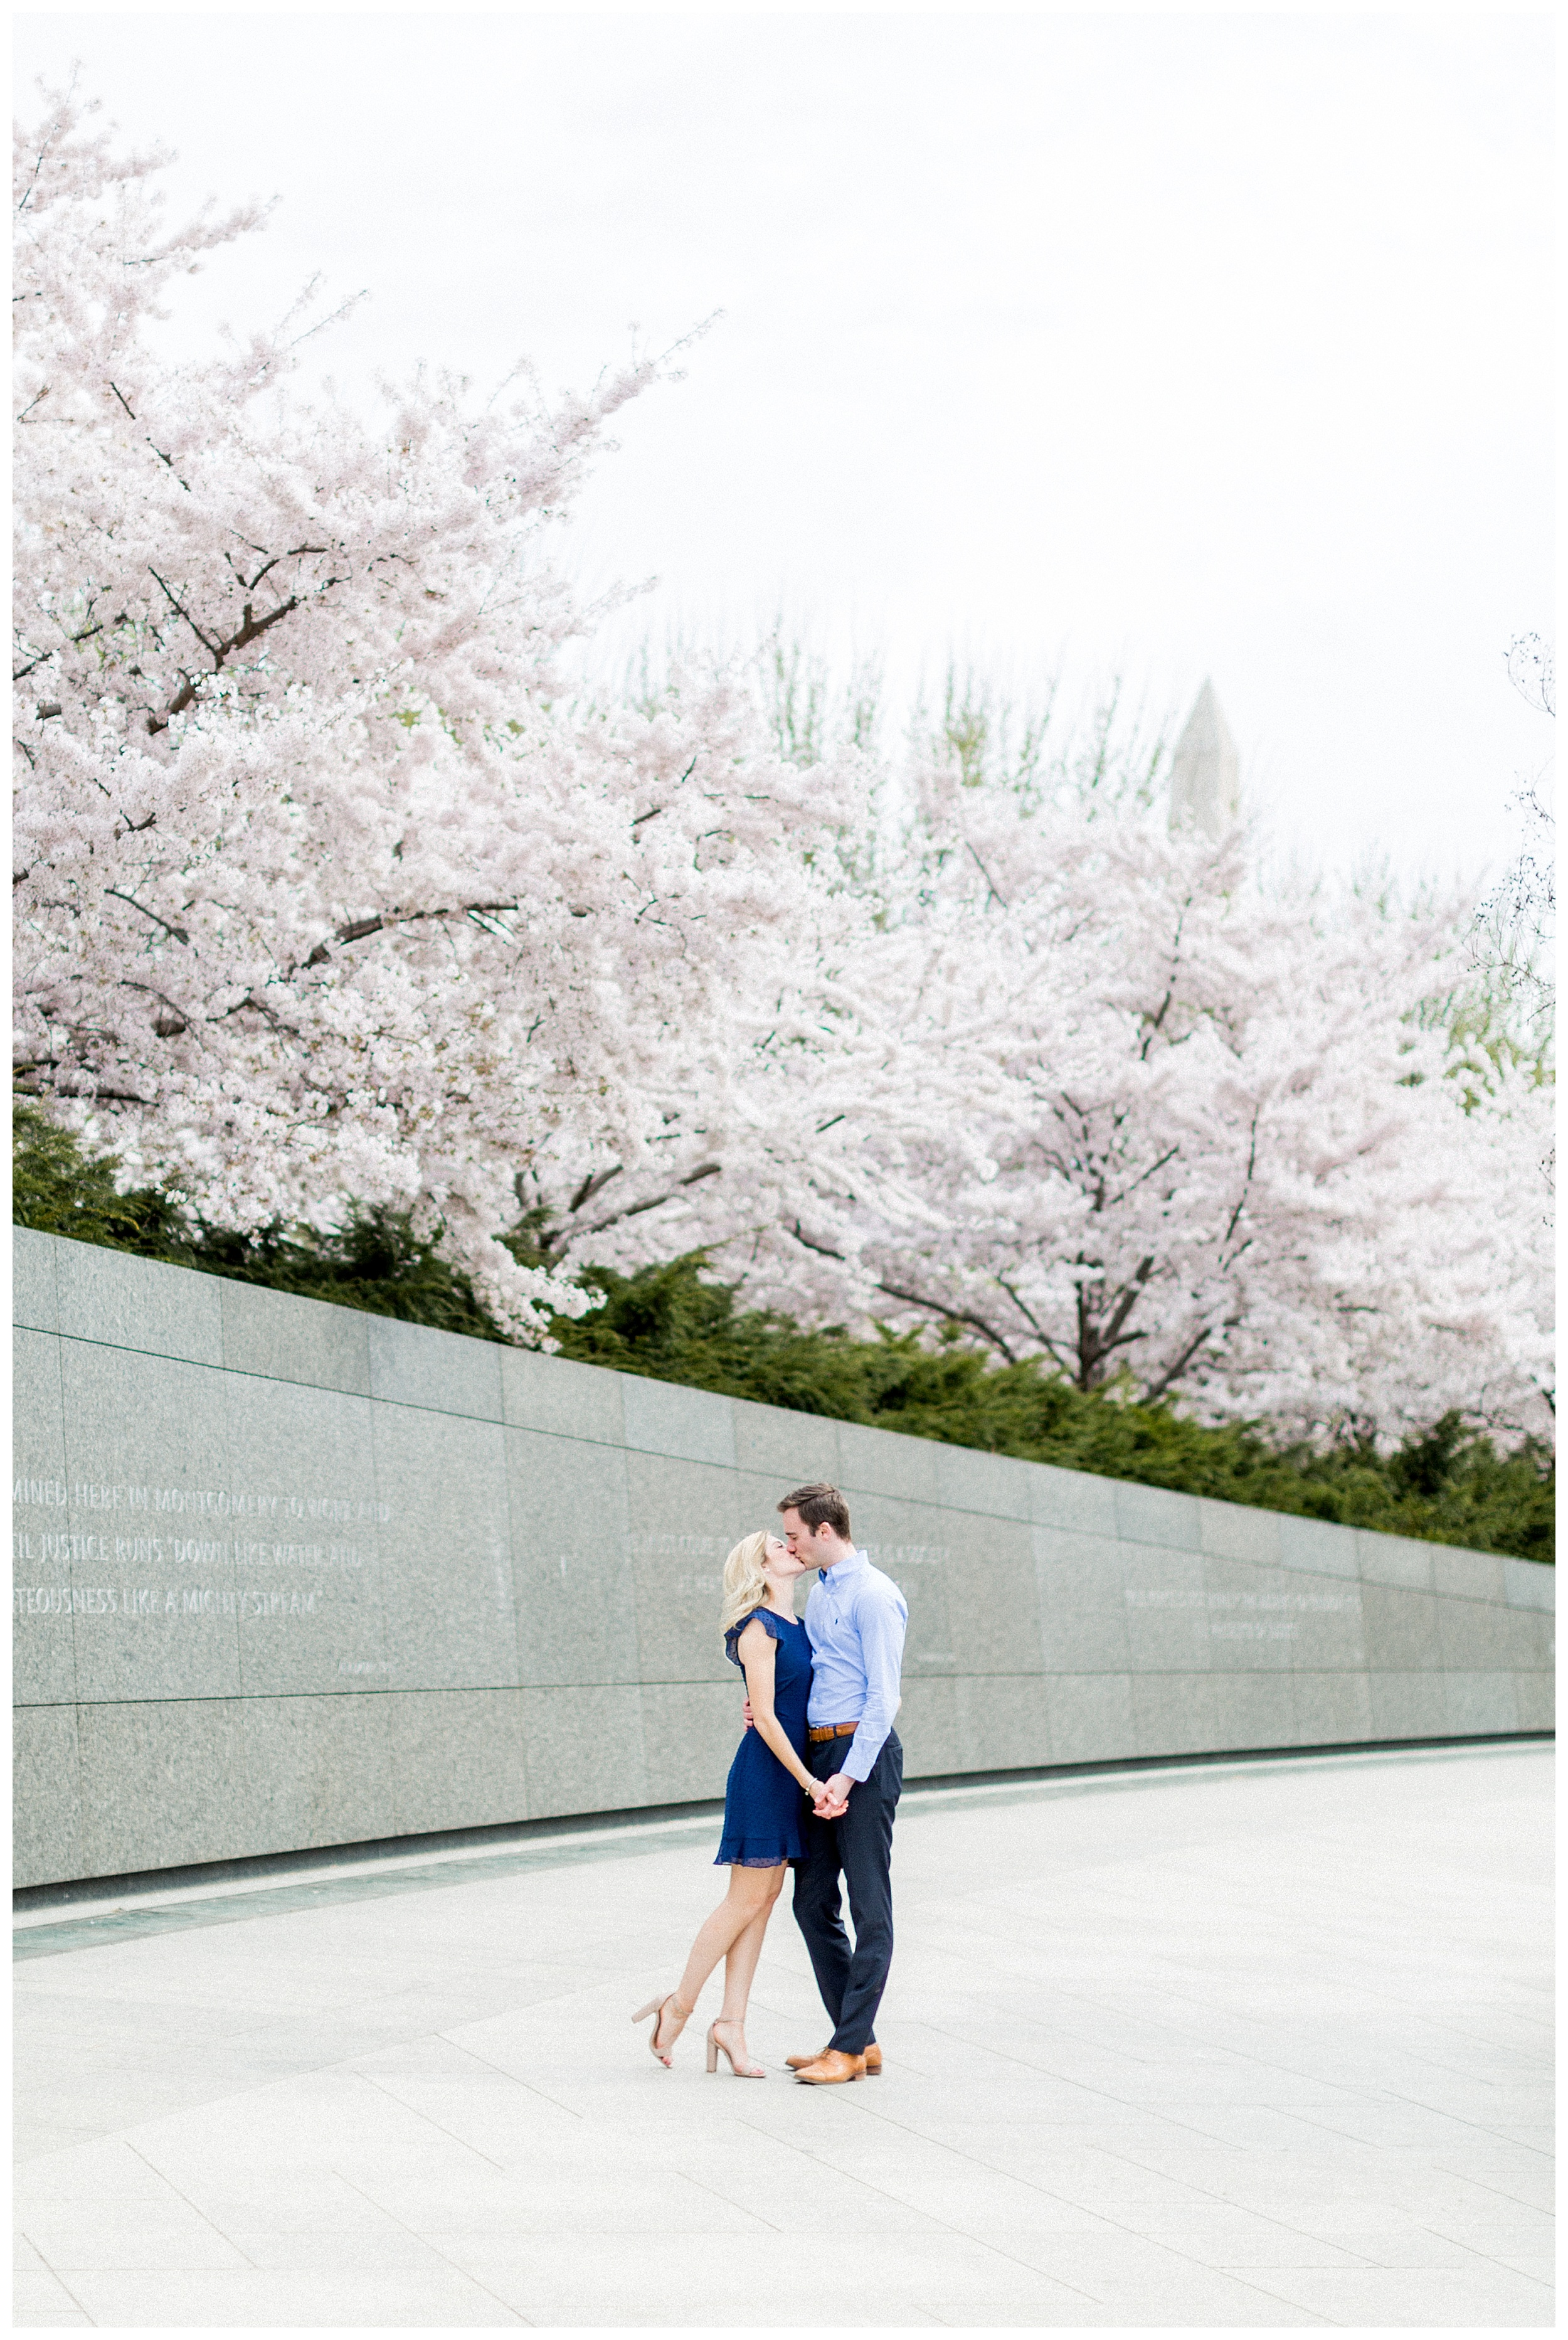 District of Columbia Cherry Blossom Engagement Session_0037.jpg